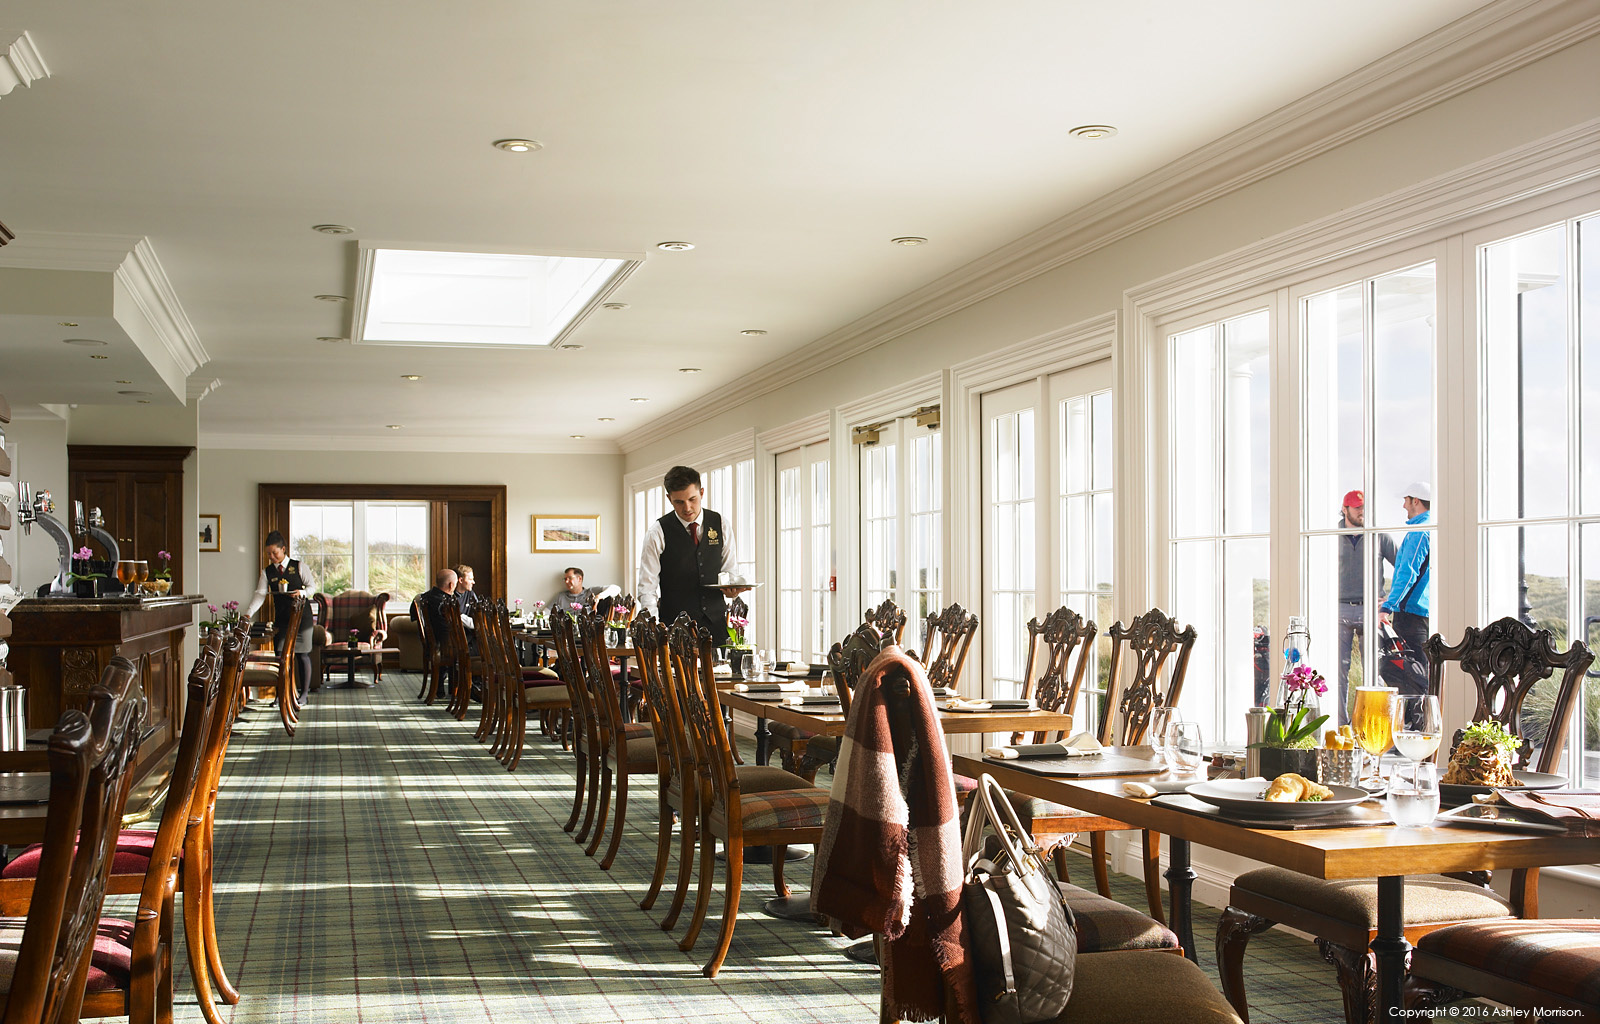 The restaurant in the Golf clubhouse at the Trump International Golf Hotel near Aberdeen in Scotland.